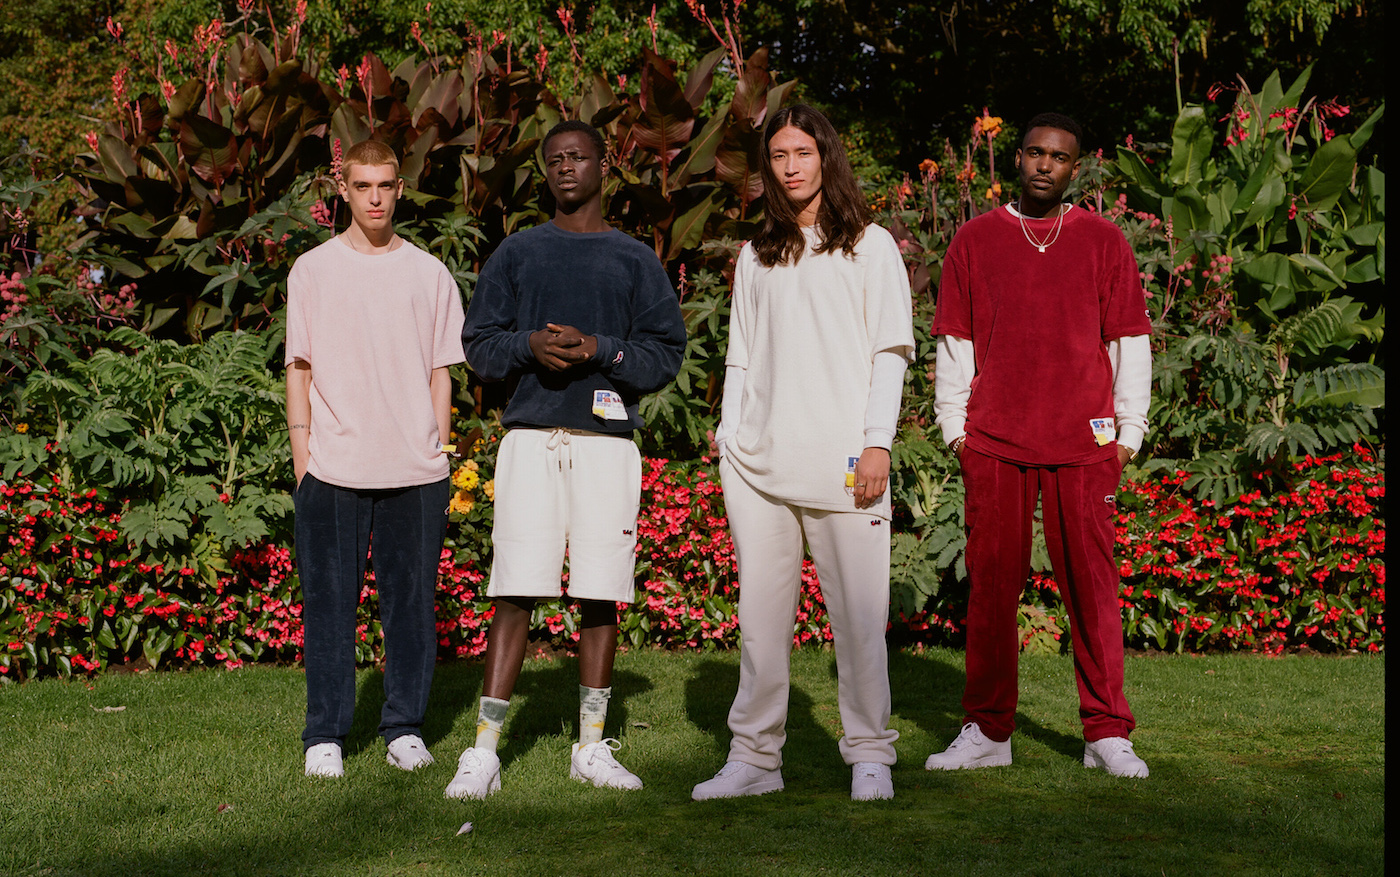 Russell Athletic Partners With Selfridges To Create New RAX Collection